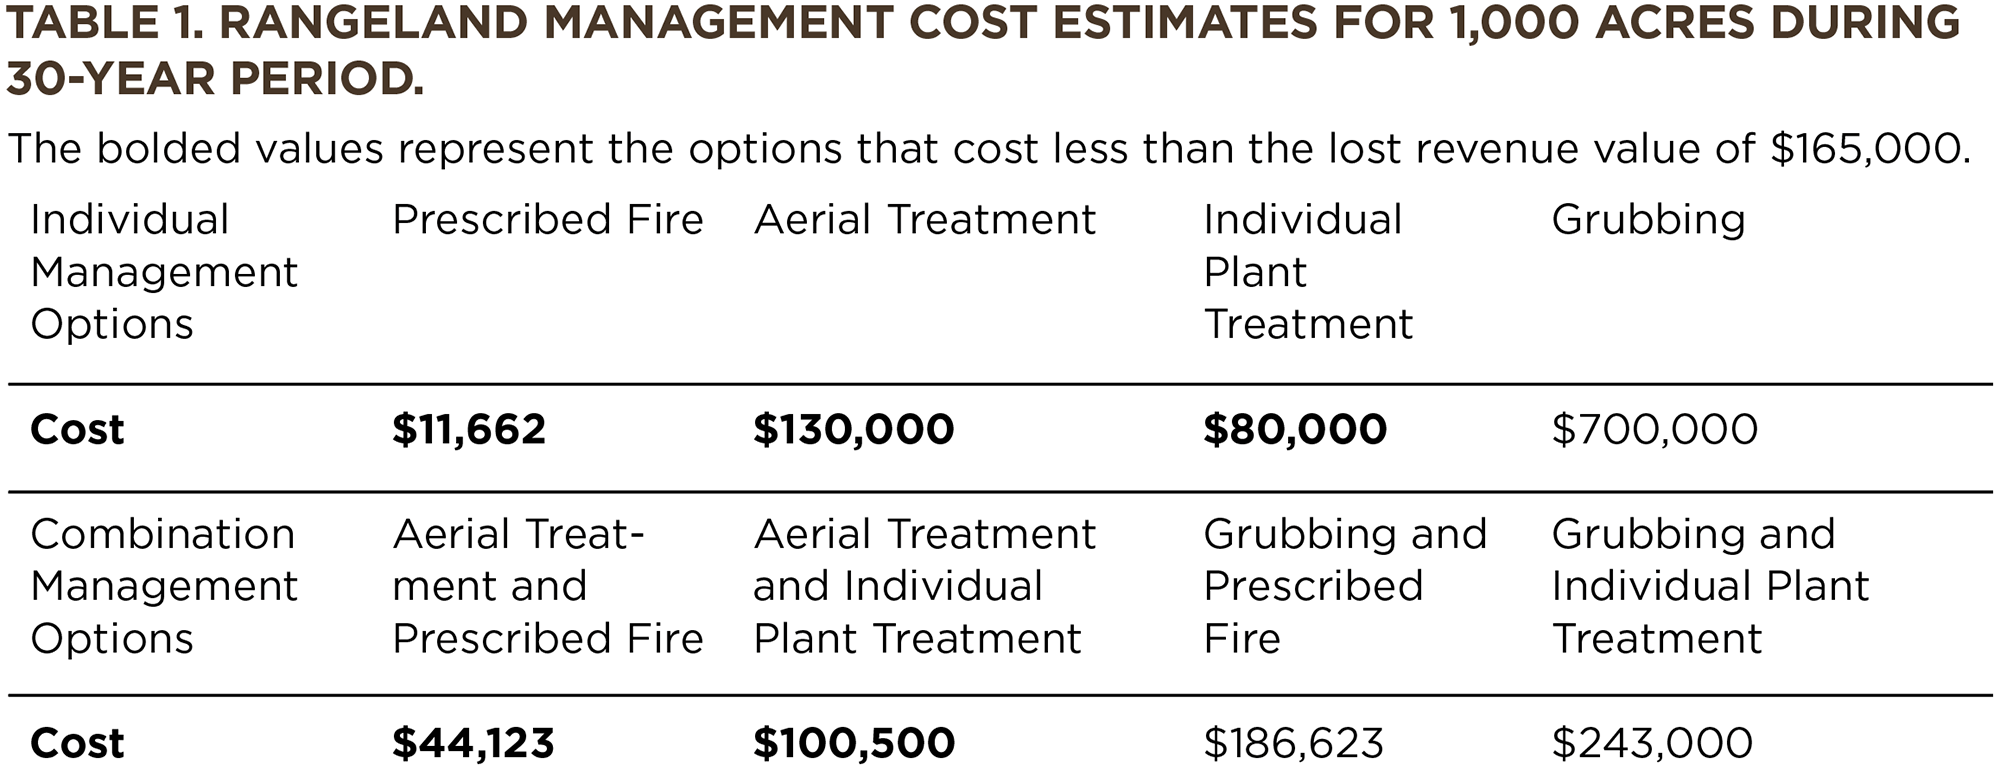 Table 1. Rangeland Management Cost Estimates for 1,000 Acres During 30-Year Period.